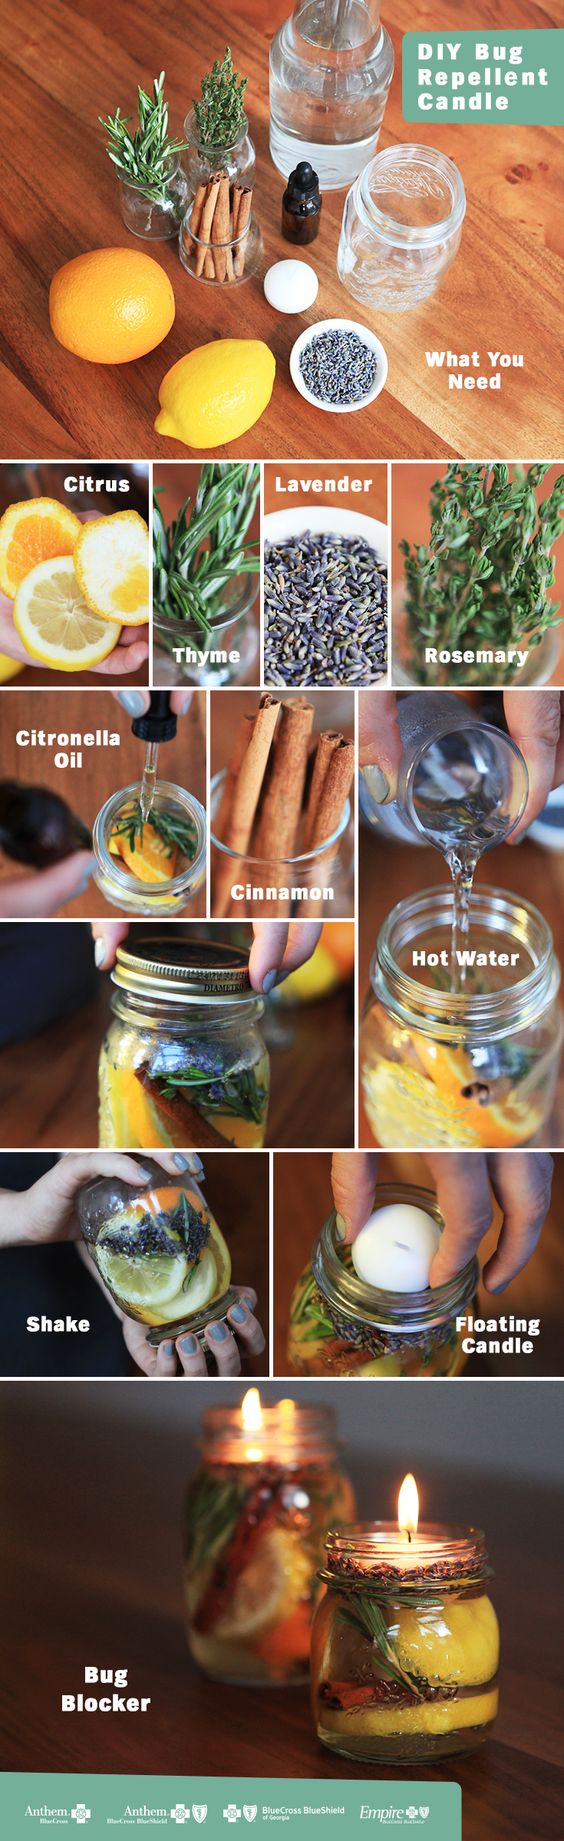 This is one sweet smelling, bug repelling candle! Make your own in a few easy steps. Fill a mason jar with citrus rinds and herbs. Add 20 to 30 drops of citronella oil. Top with hot water to help develop the scent. Float a candle at the top of the jar and light. Sit back and enjoy a bug-free night on the patio!: